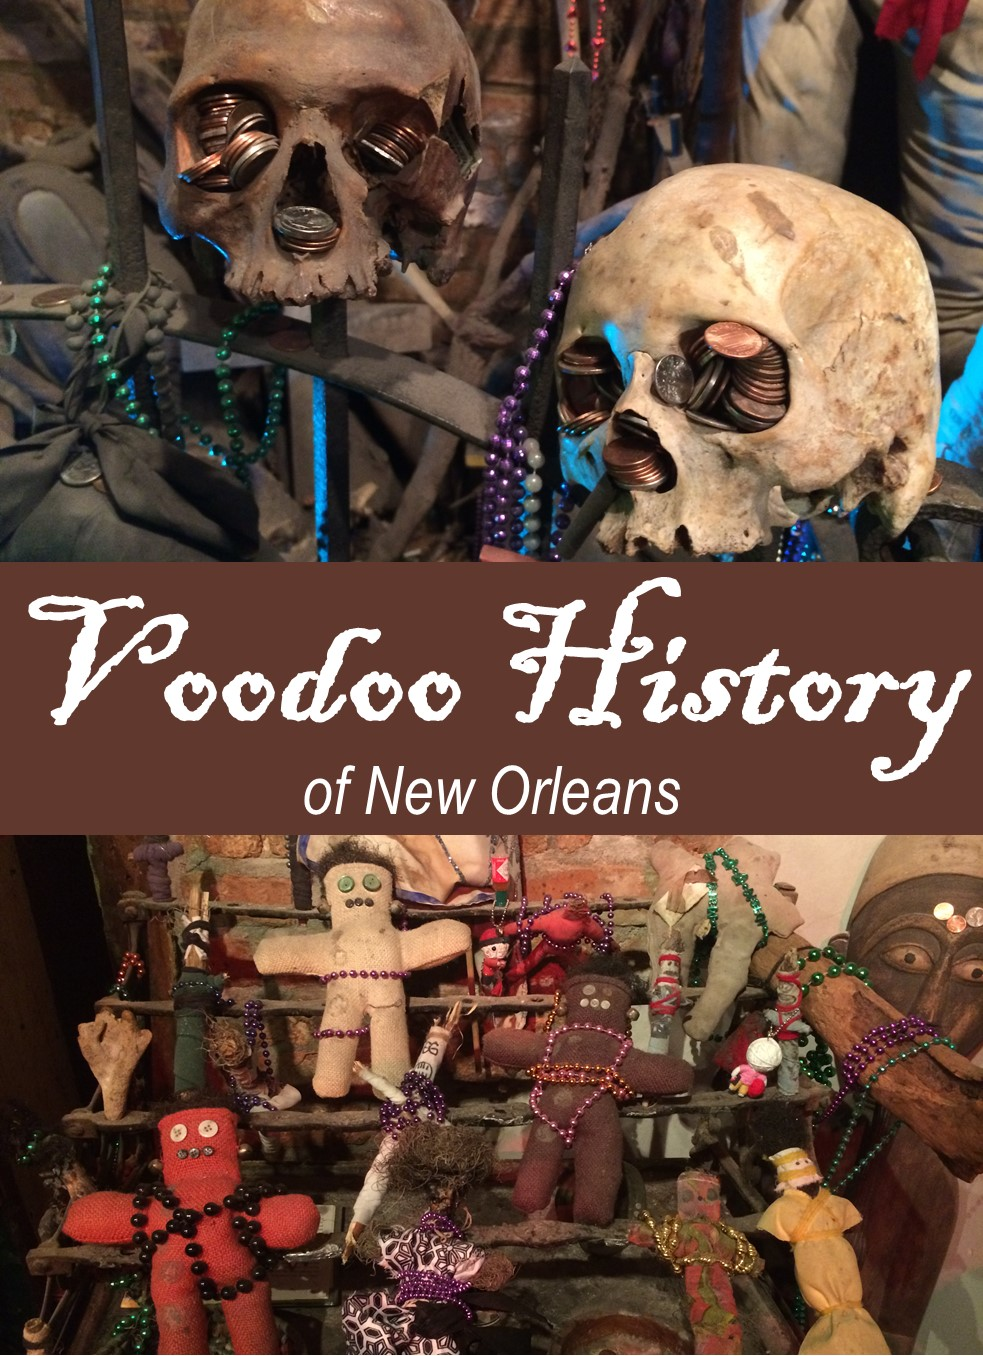 Sorcerers, psychics, witch doctors...and zombies. The complete voodoo history of New Orleans, in all its creepy glory, can be found at the Voodoo Museum.